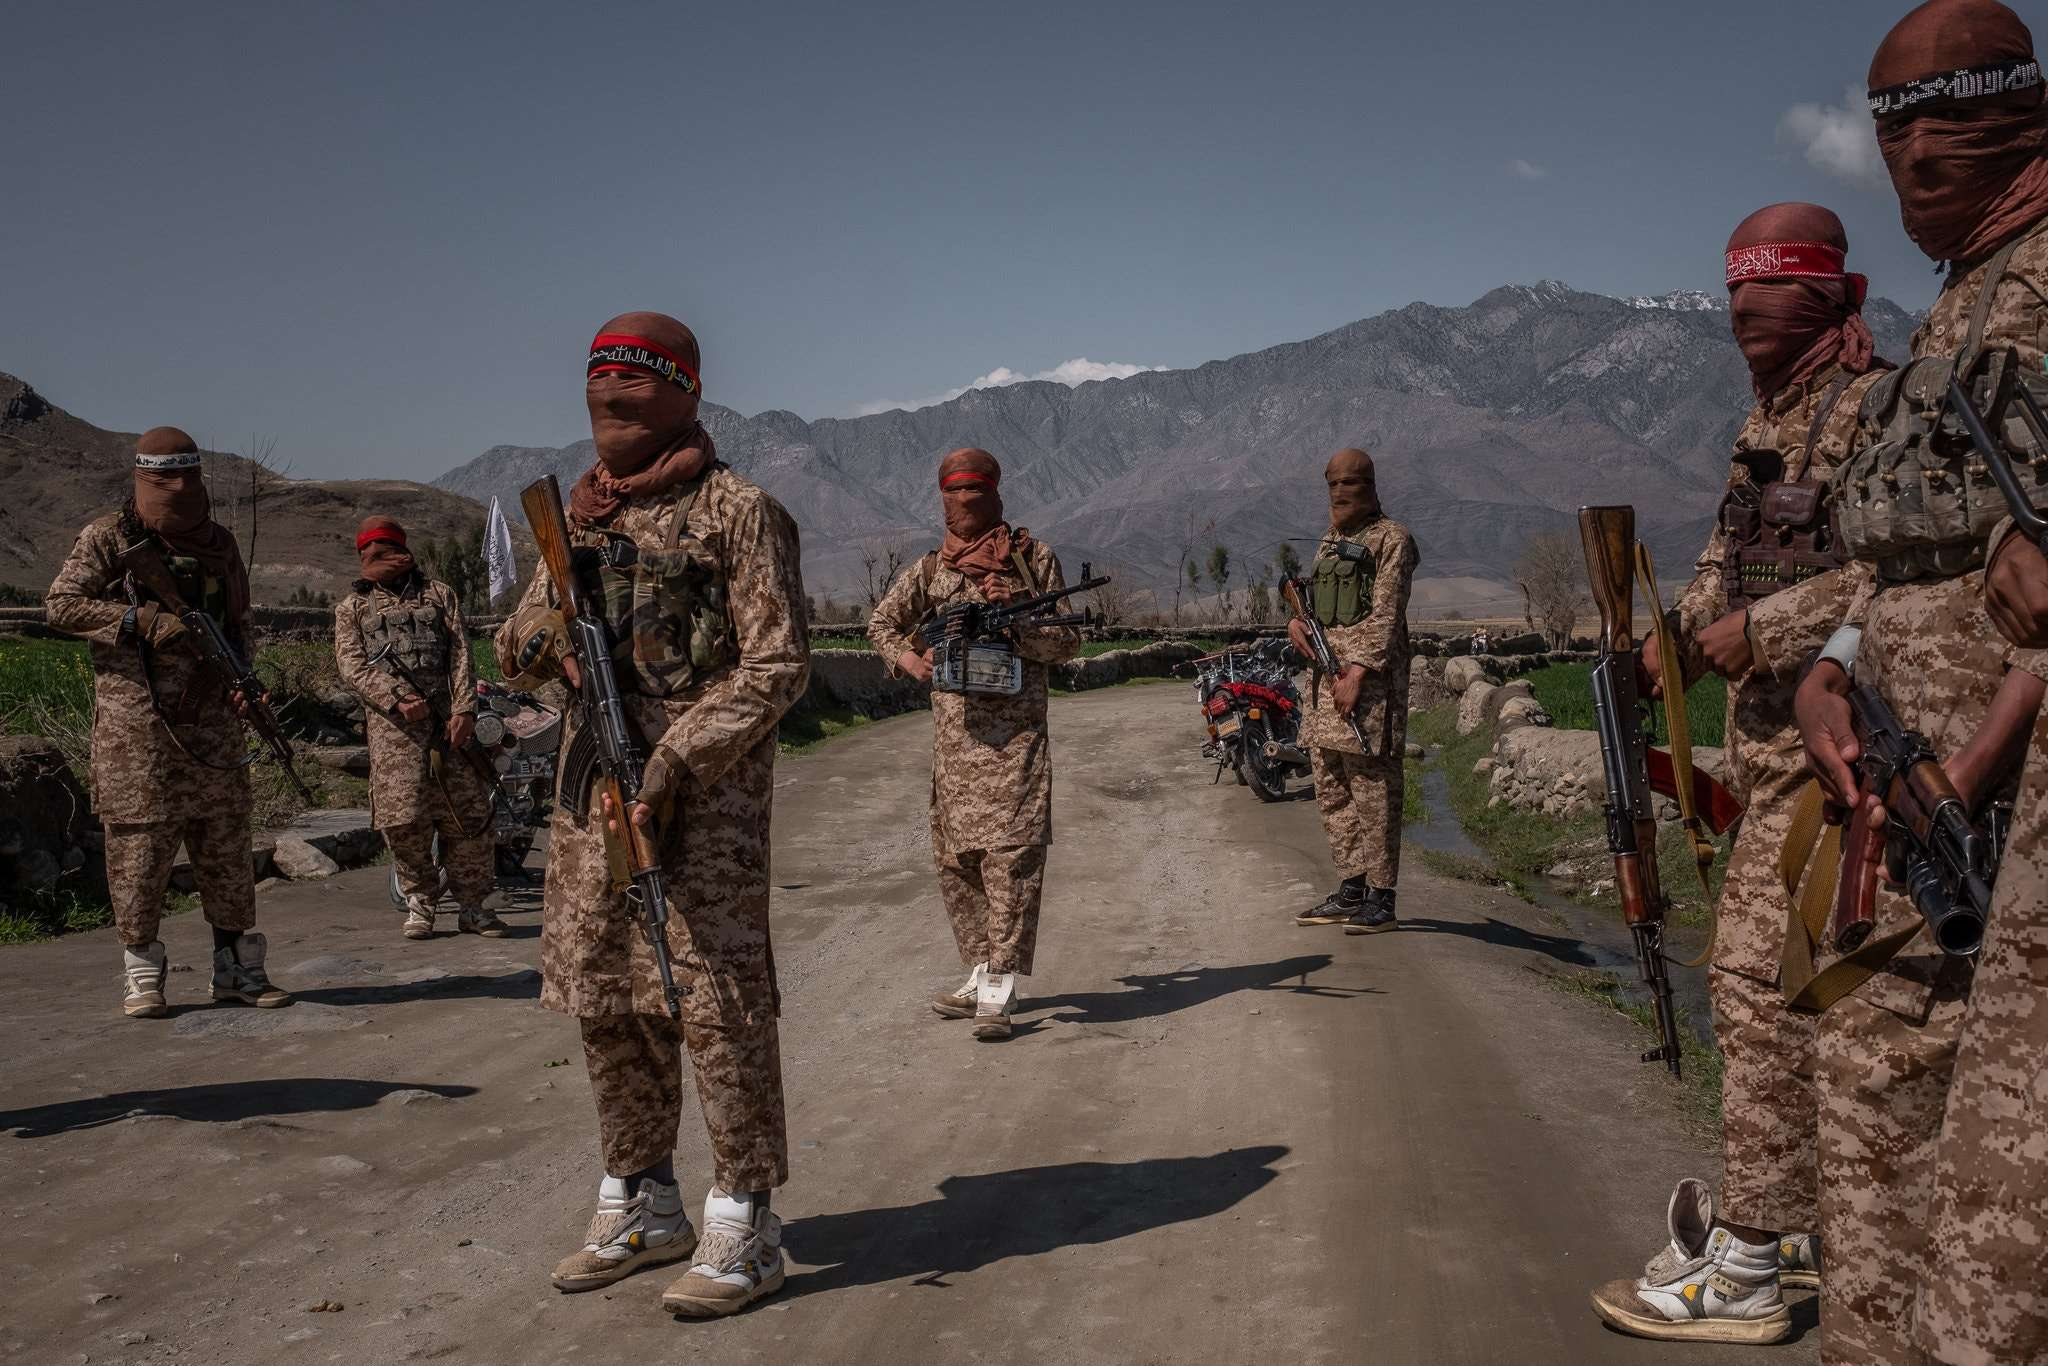 Members of a Taliban Red Unit, an elite force, operating in the Alingar district in March.Credit...Jim Huylebroek for The New York Times